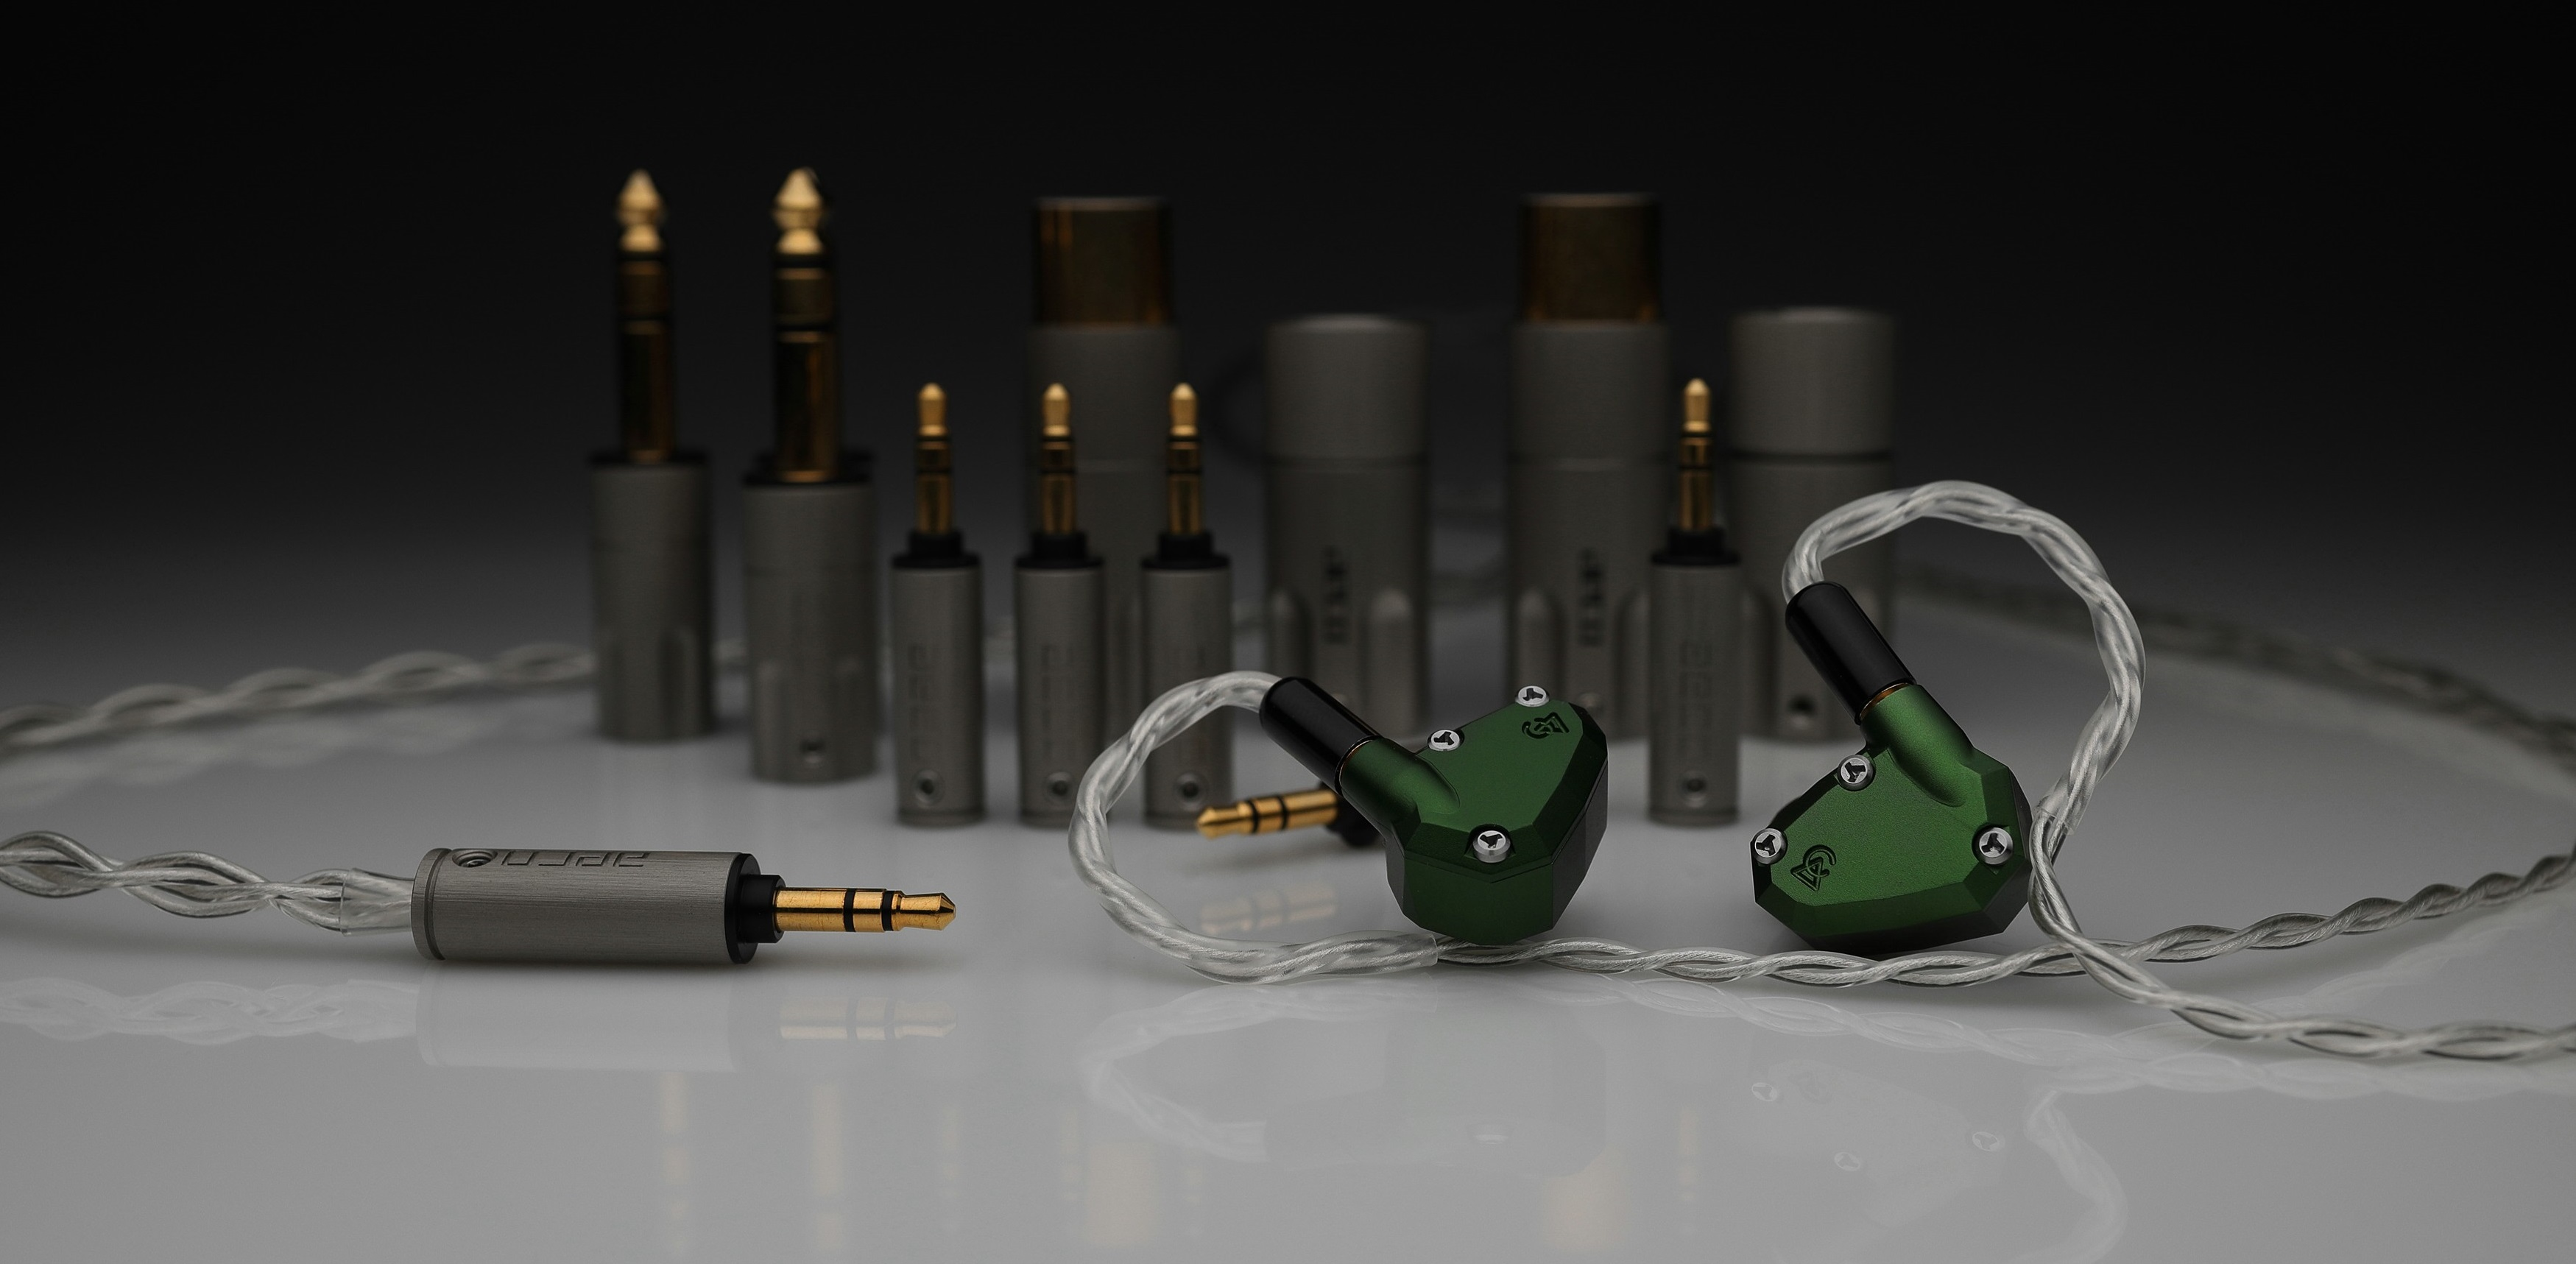 New mmcx iem cables with pure copper Aeco plugs available now!